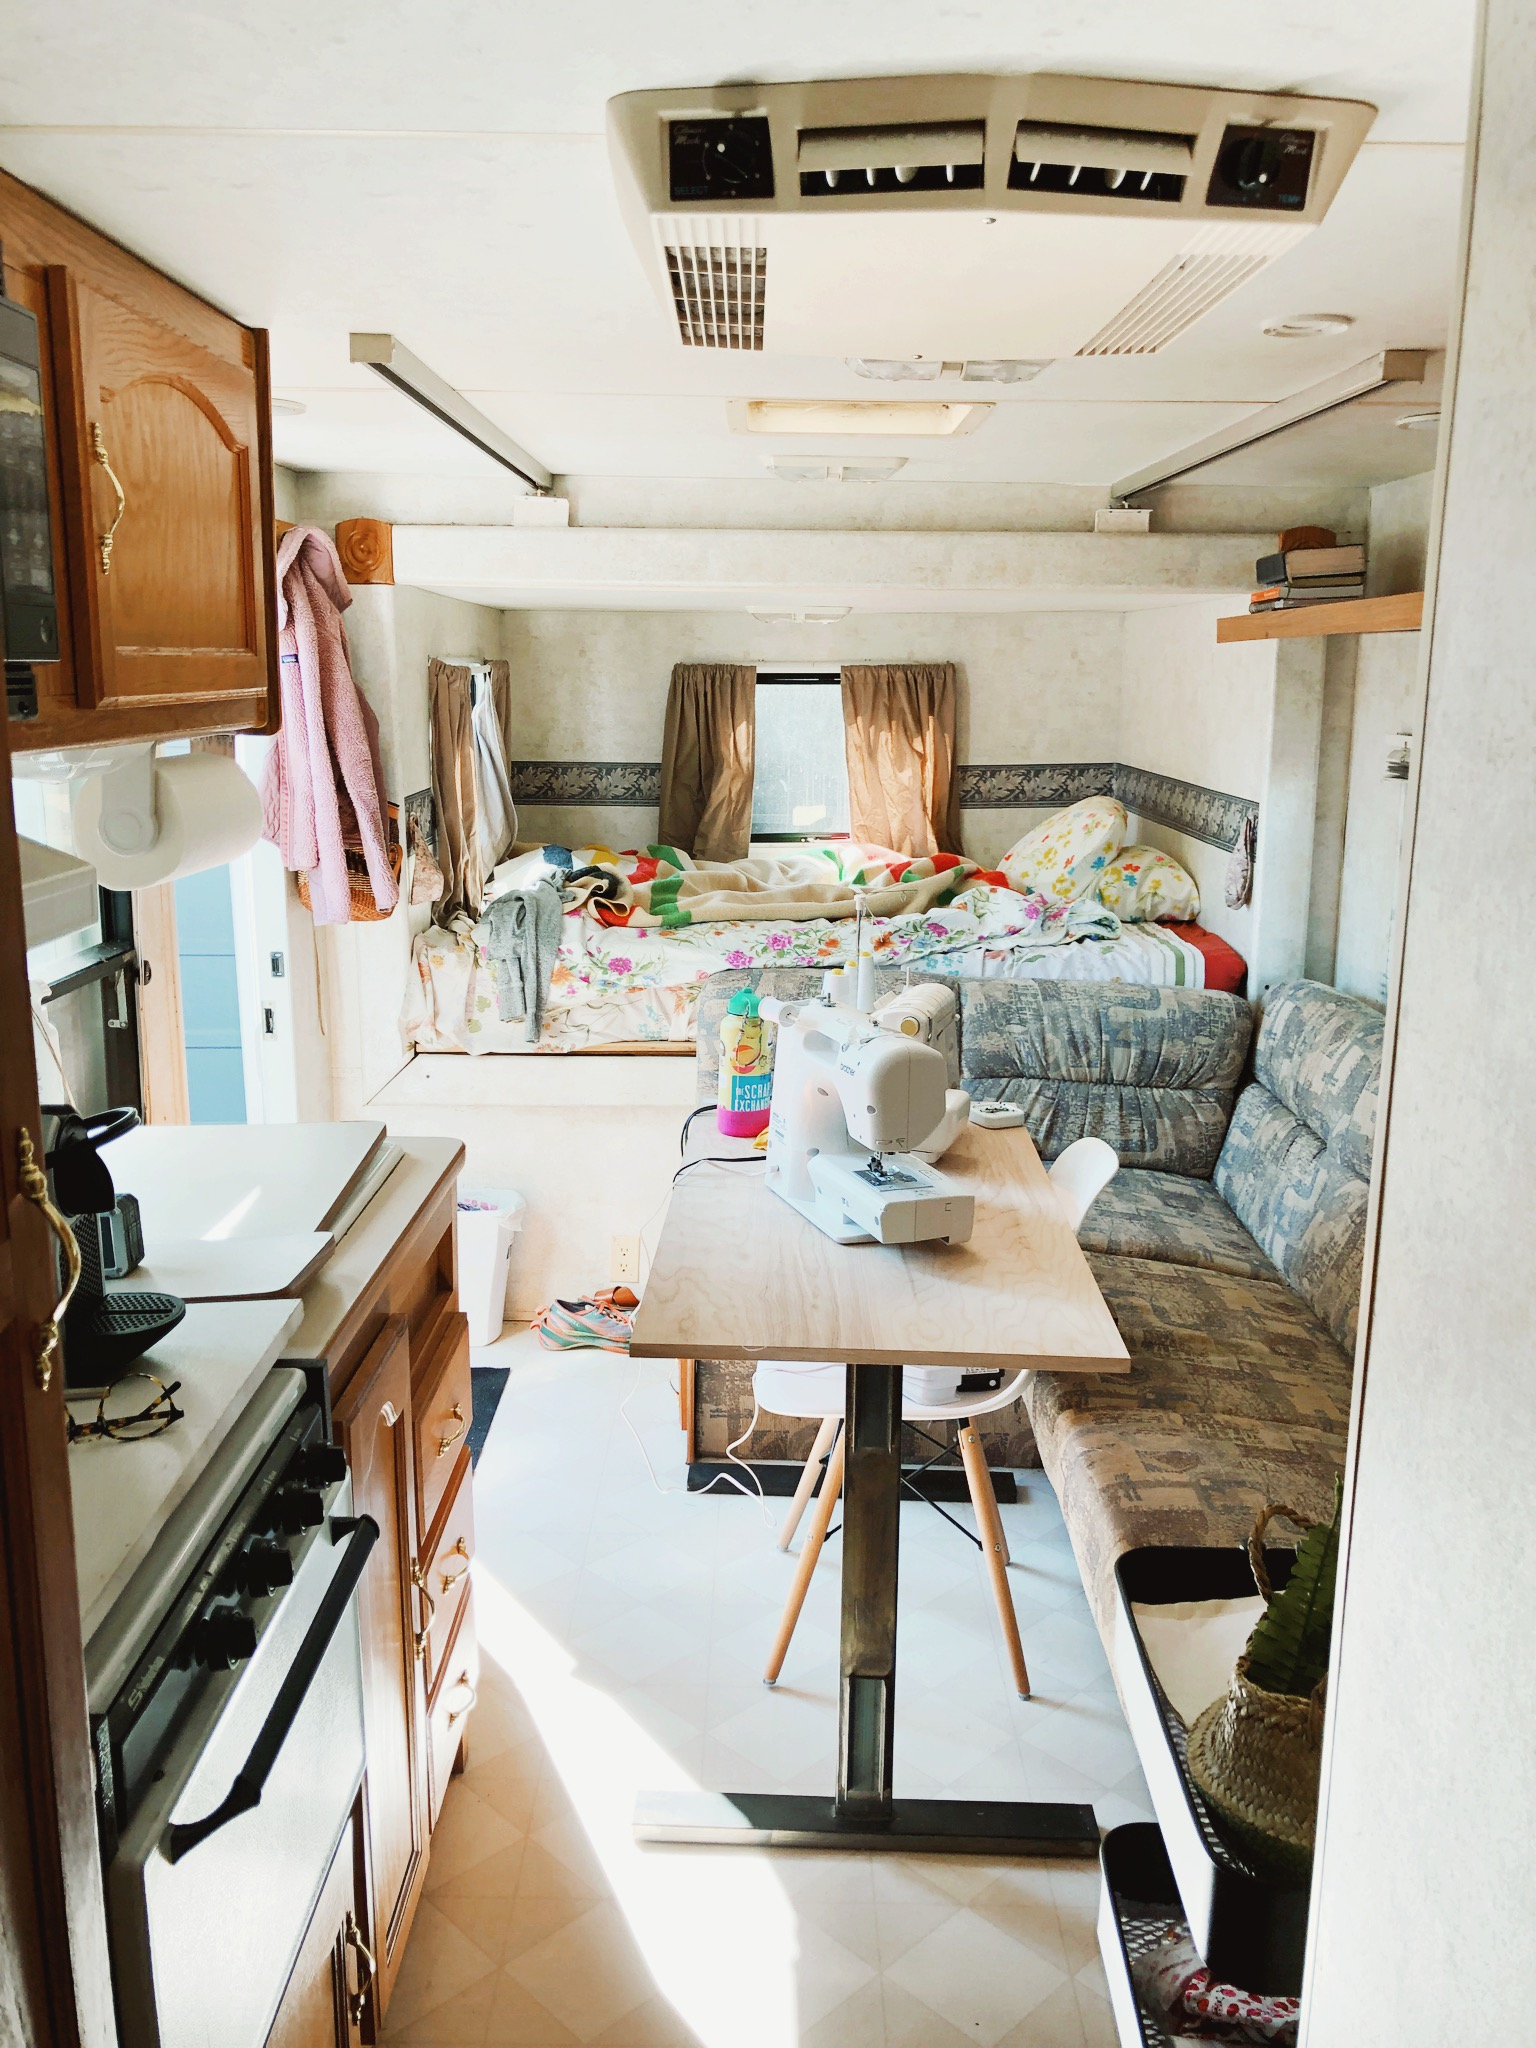 This is the view from the back of the RV looking out toward the door. The table is a bit tight during the day when I push it out to sew - but it works.